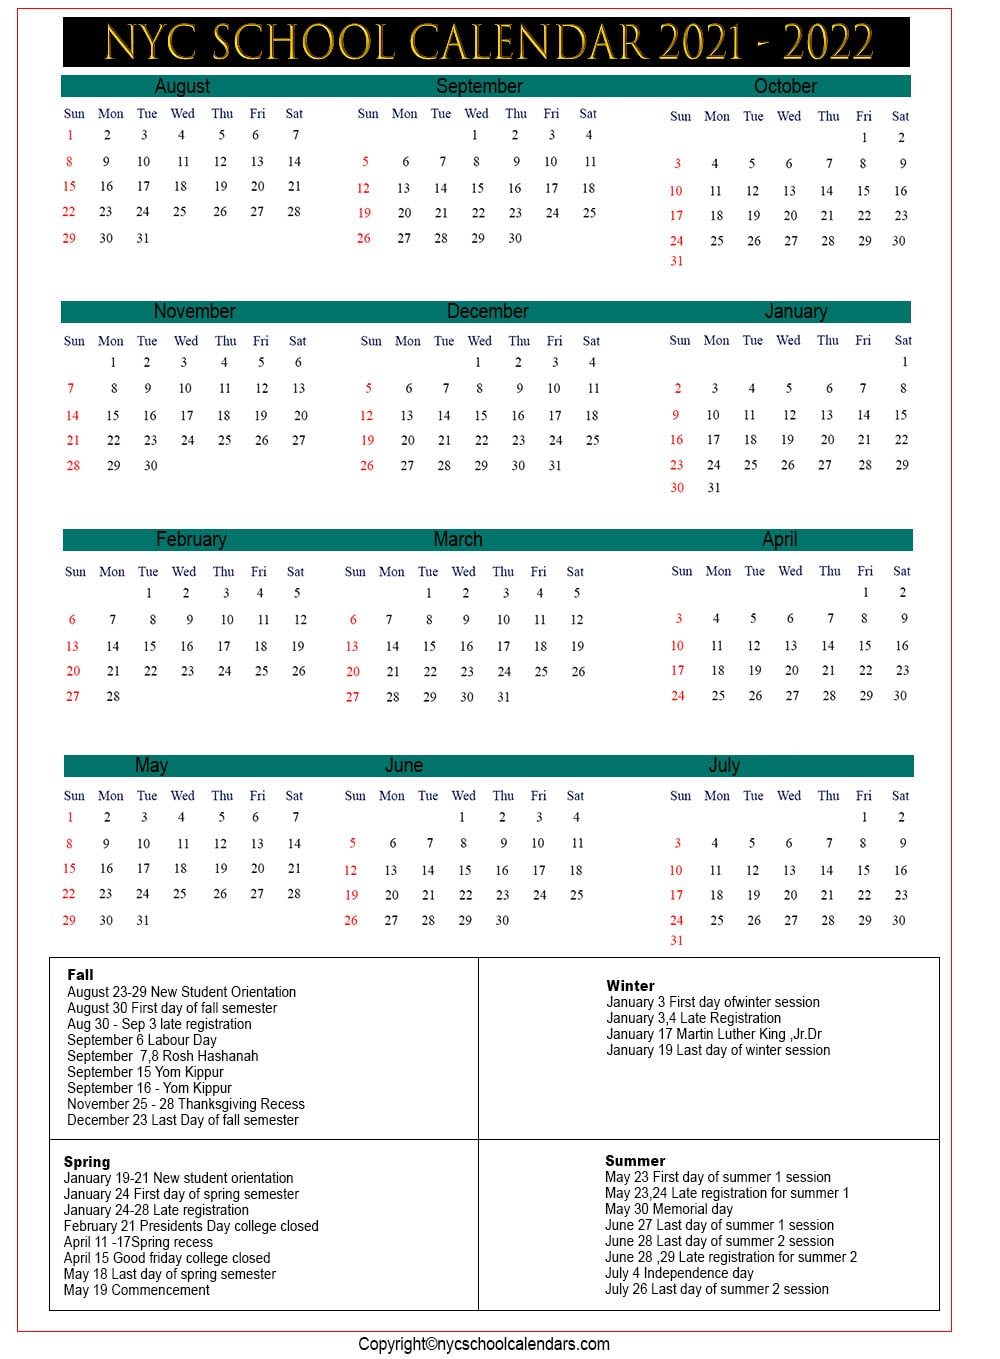 Assisted Living Activities Schedule | Printable Calendar Intended For Board Of Education Calendar 2021 2020 Bibb County